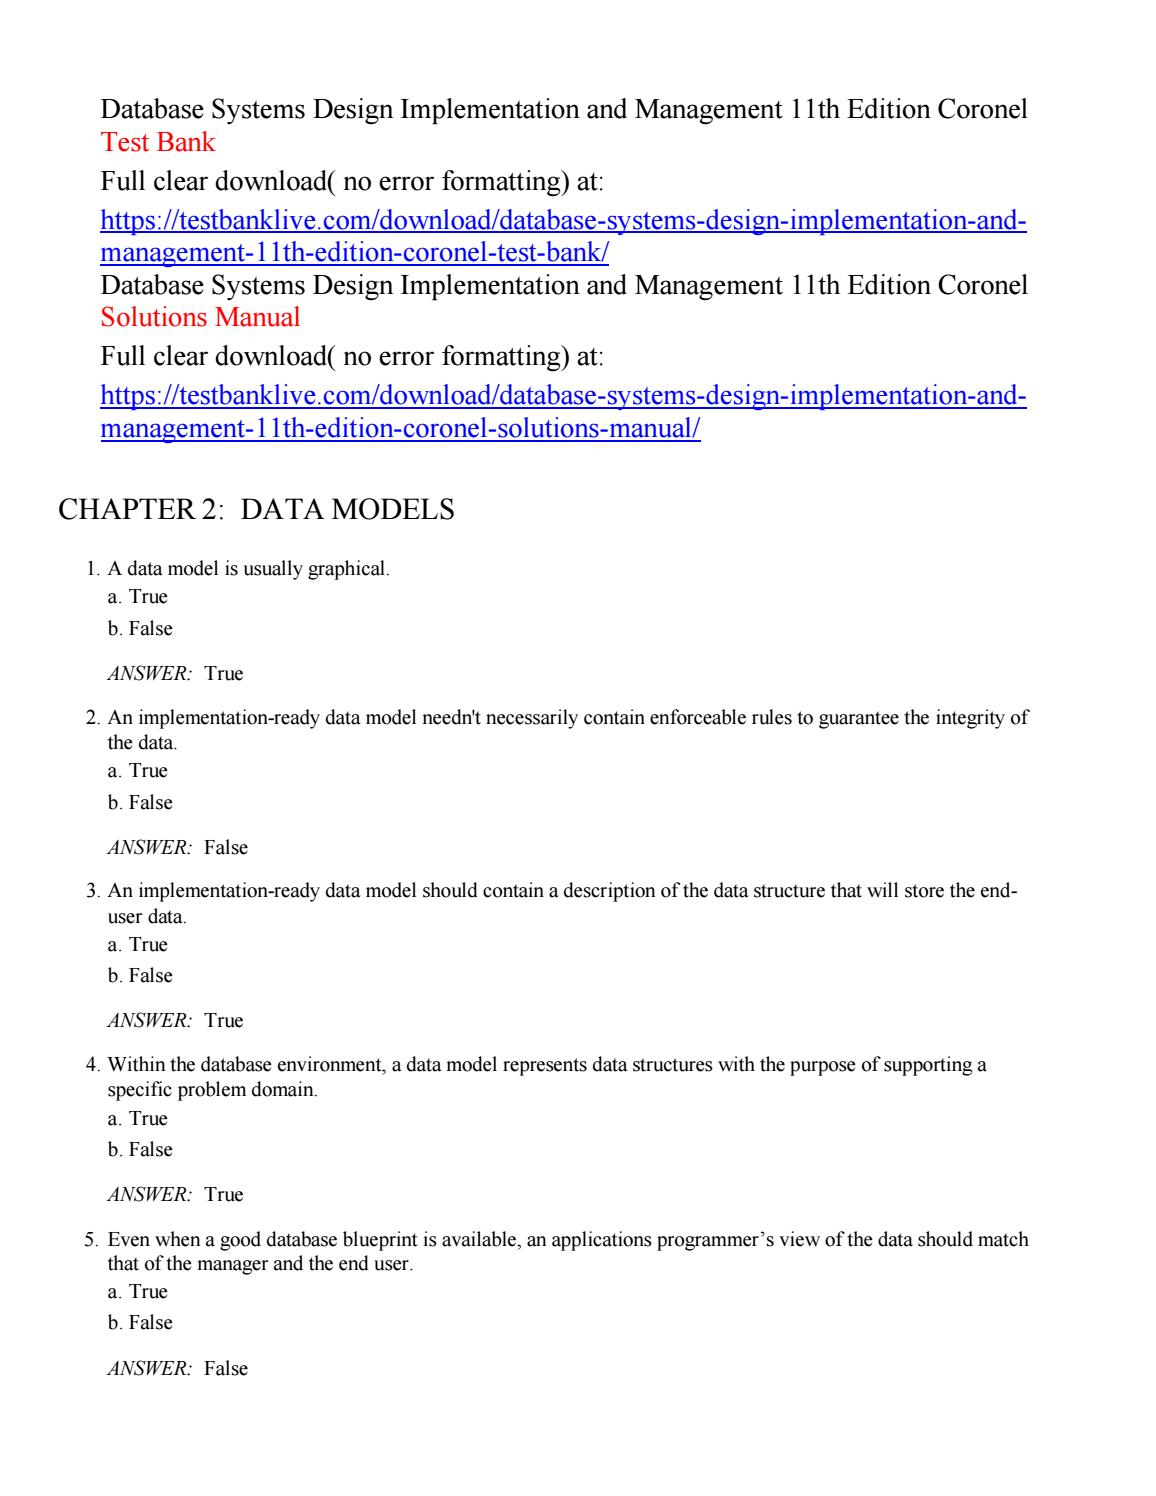 Database Systems Design Implementation And Management 11th Edition Coronel Test Bank By Farah028 Issuu